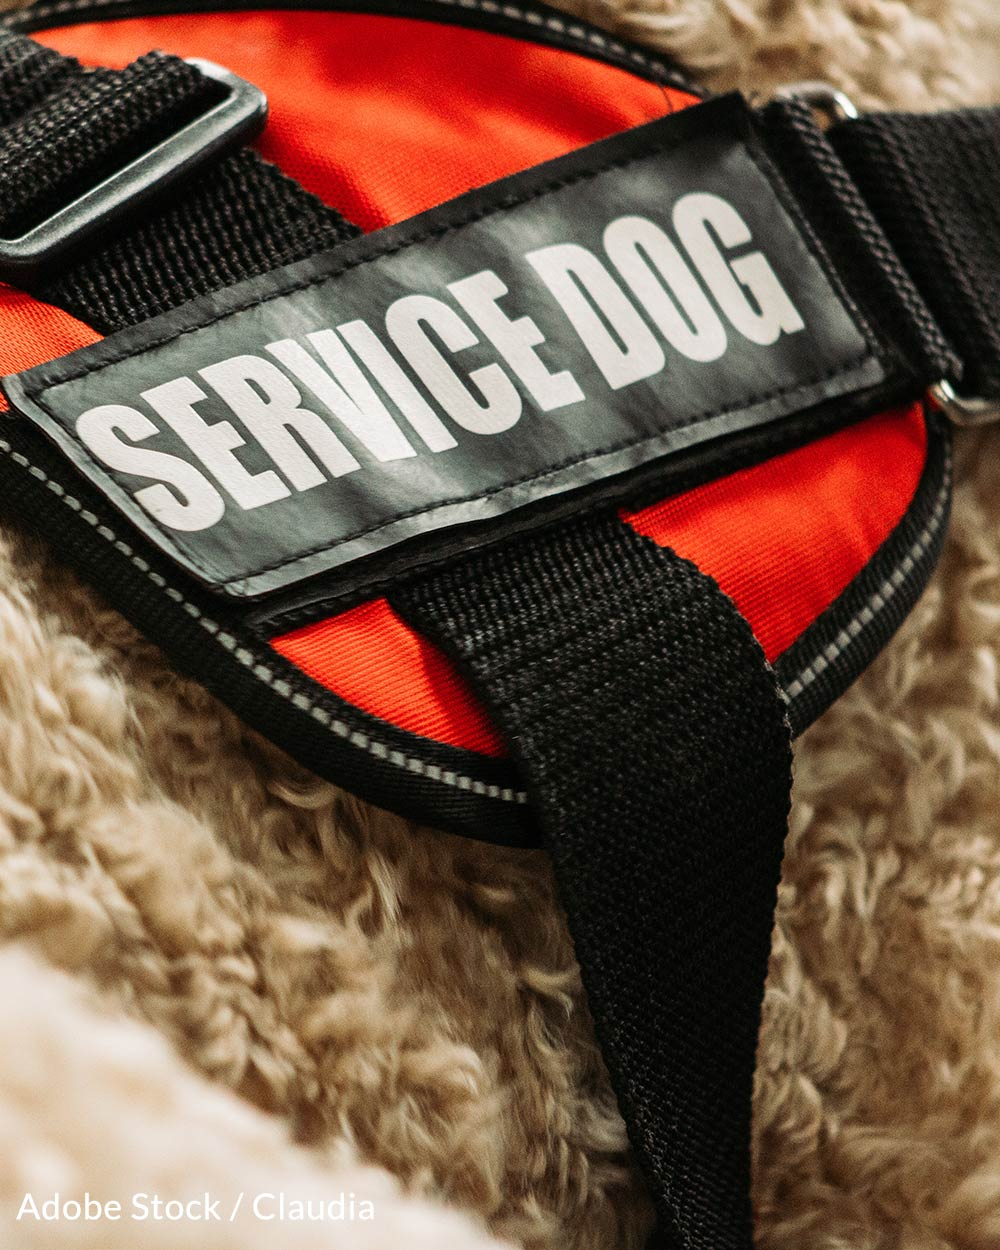 Service Dogs help keep their handlers safe.